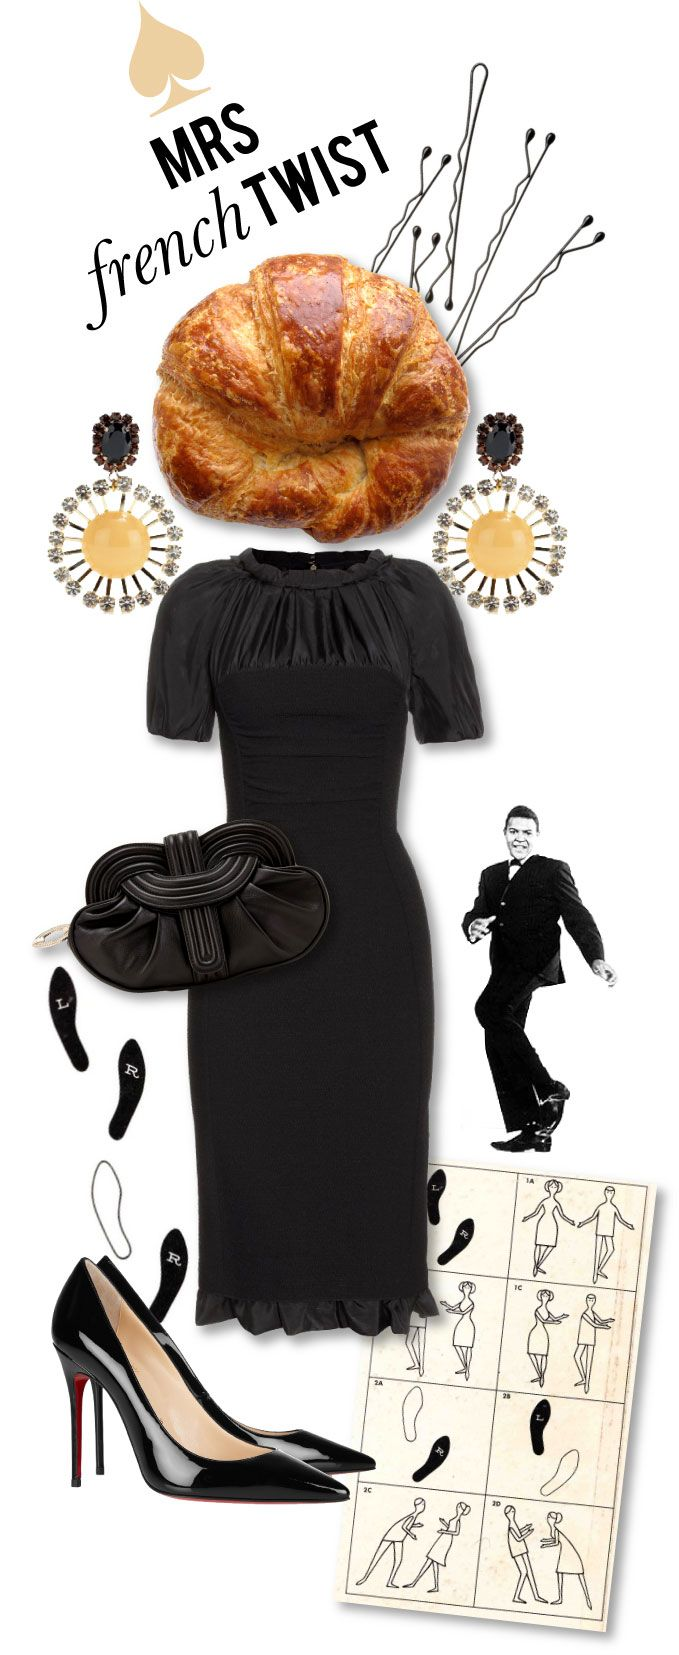 Mrs. Lilien - Styling House (Marni Starburst Earrings / Nina Ricci, Puckered Frock / Twisted Leather Clutch / Christian Louboutin Patent Pumps / The Twist)